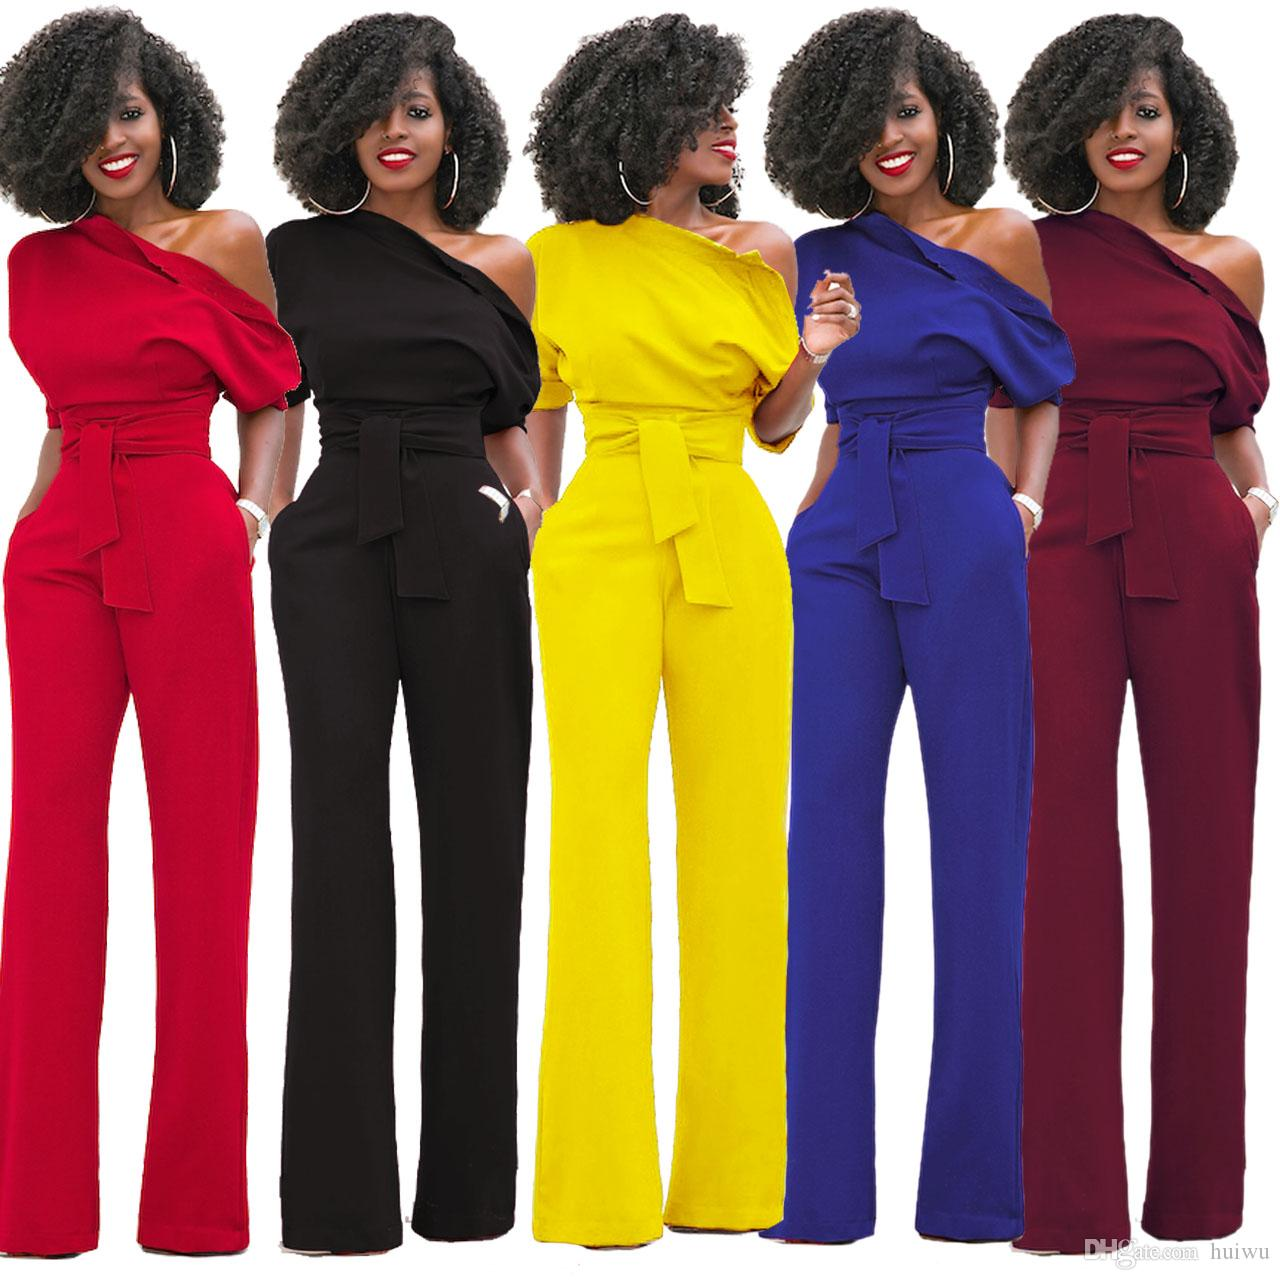 f24041fc21bc 2019 Women S Jumpsuit Sexy Summer Overalls Half Sleeve Off Should Solid Rompers  Jumpsuits Bodycon Elegant Bodysuit Wide Legging Pants From Huiwu